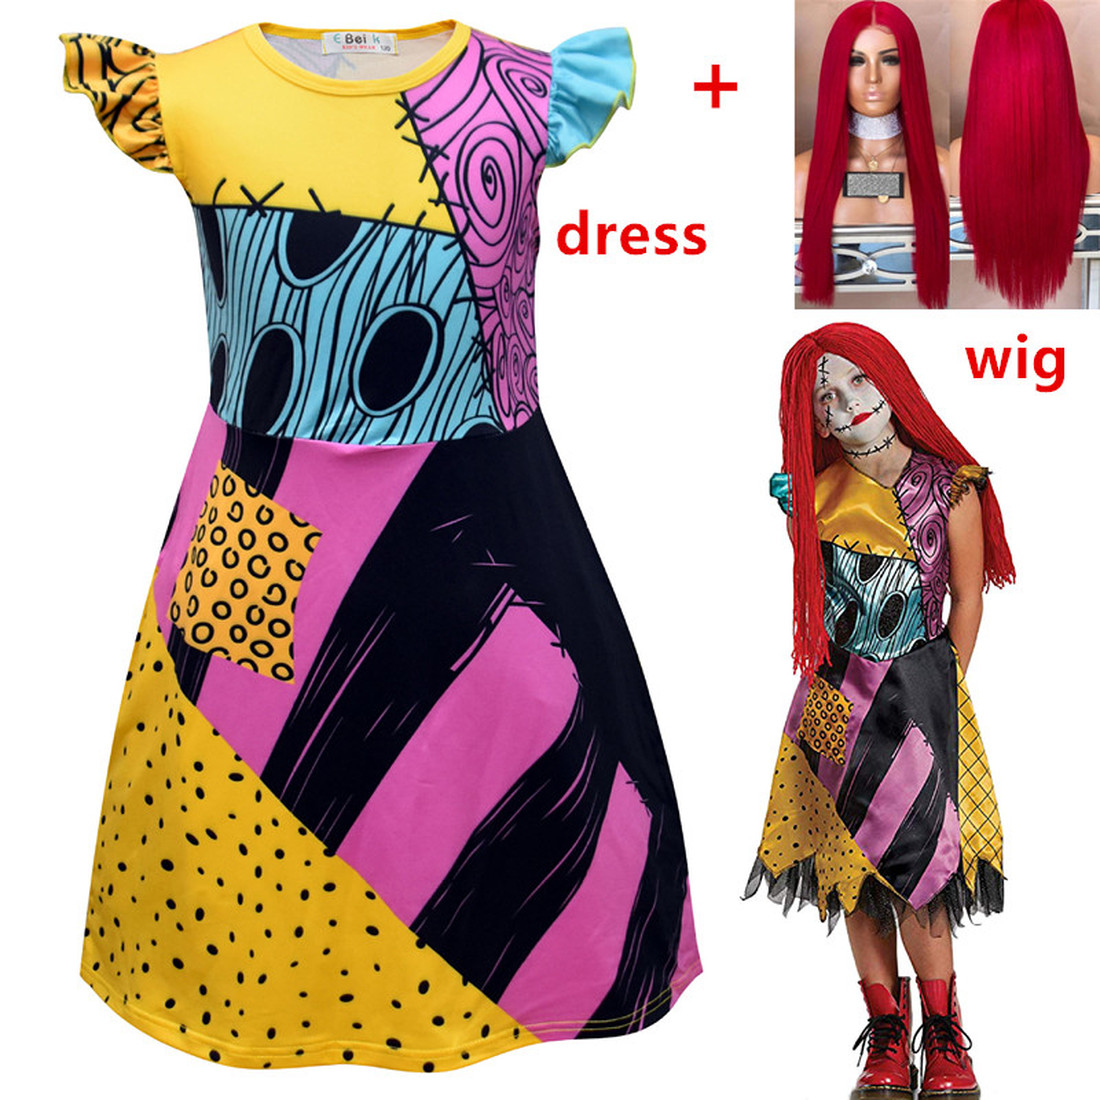 Nightmare Before Christmas Sally Cosplay Princess Dress Girls Christmas Dresses Kids Home Clothes halloween costume for kids+wig